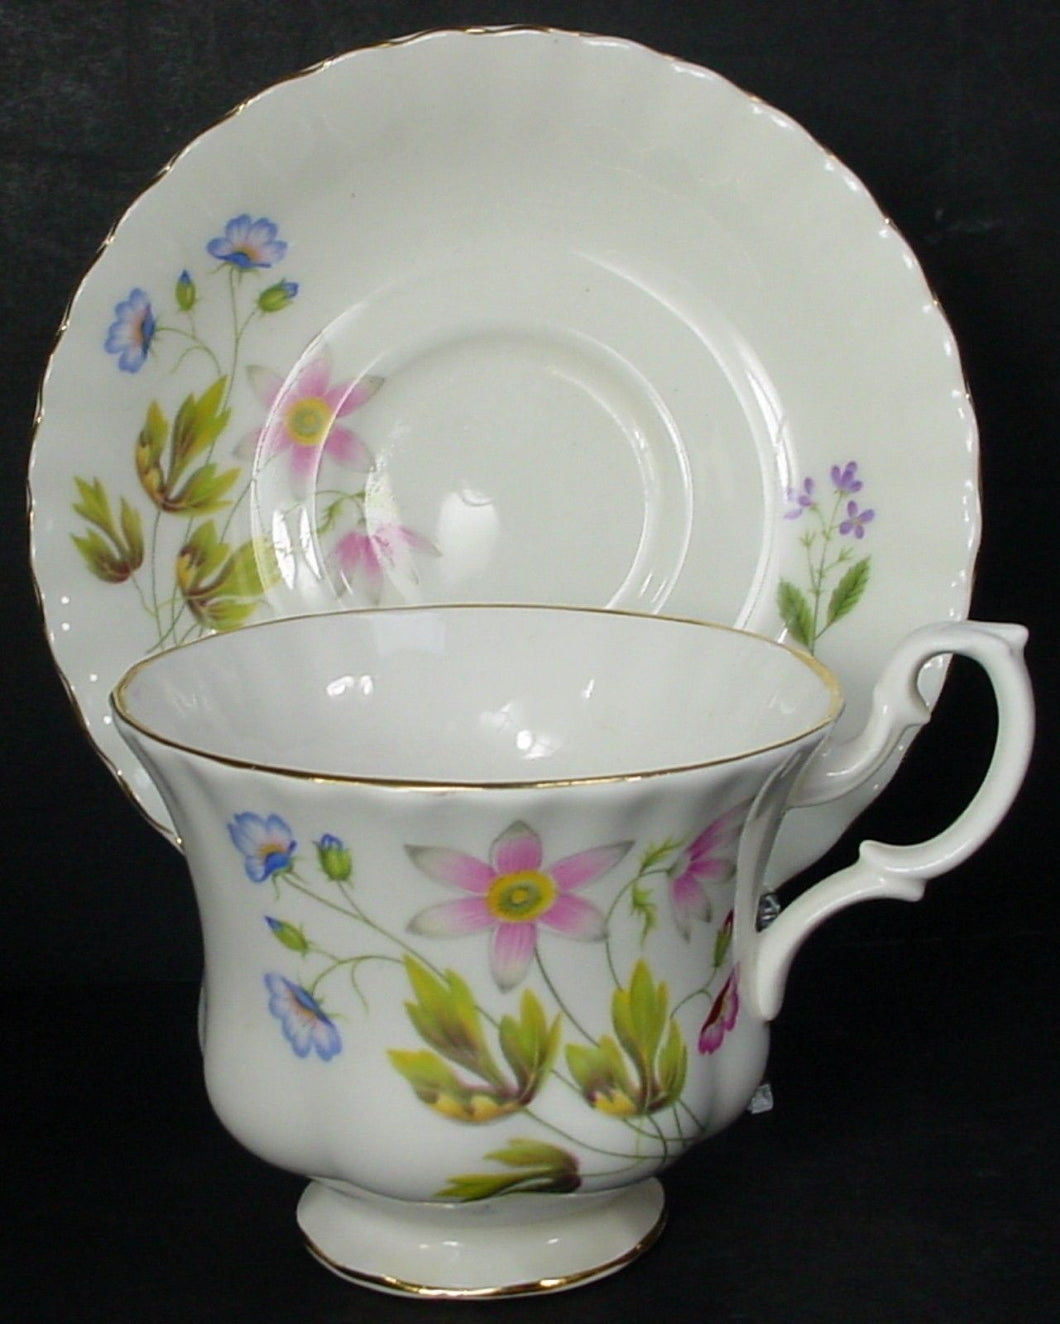 RICHMOND china WILD ANEMONE ribbed pattern CUP & SAUCER set Cup 2-7/8